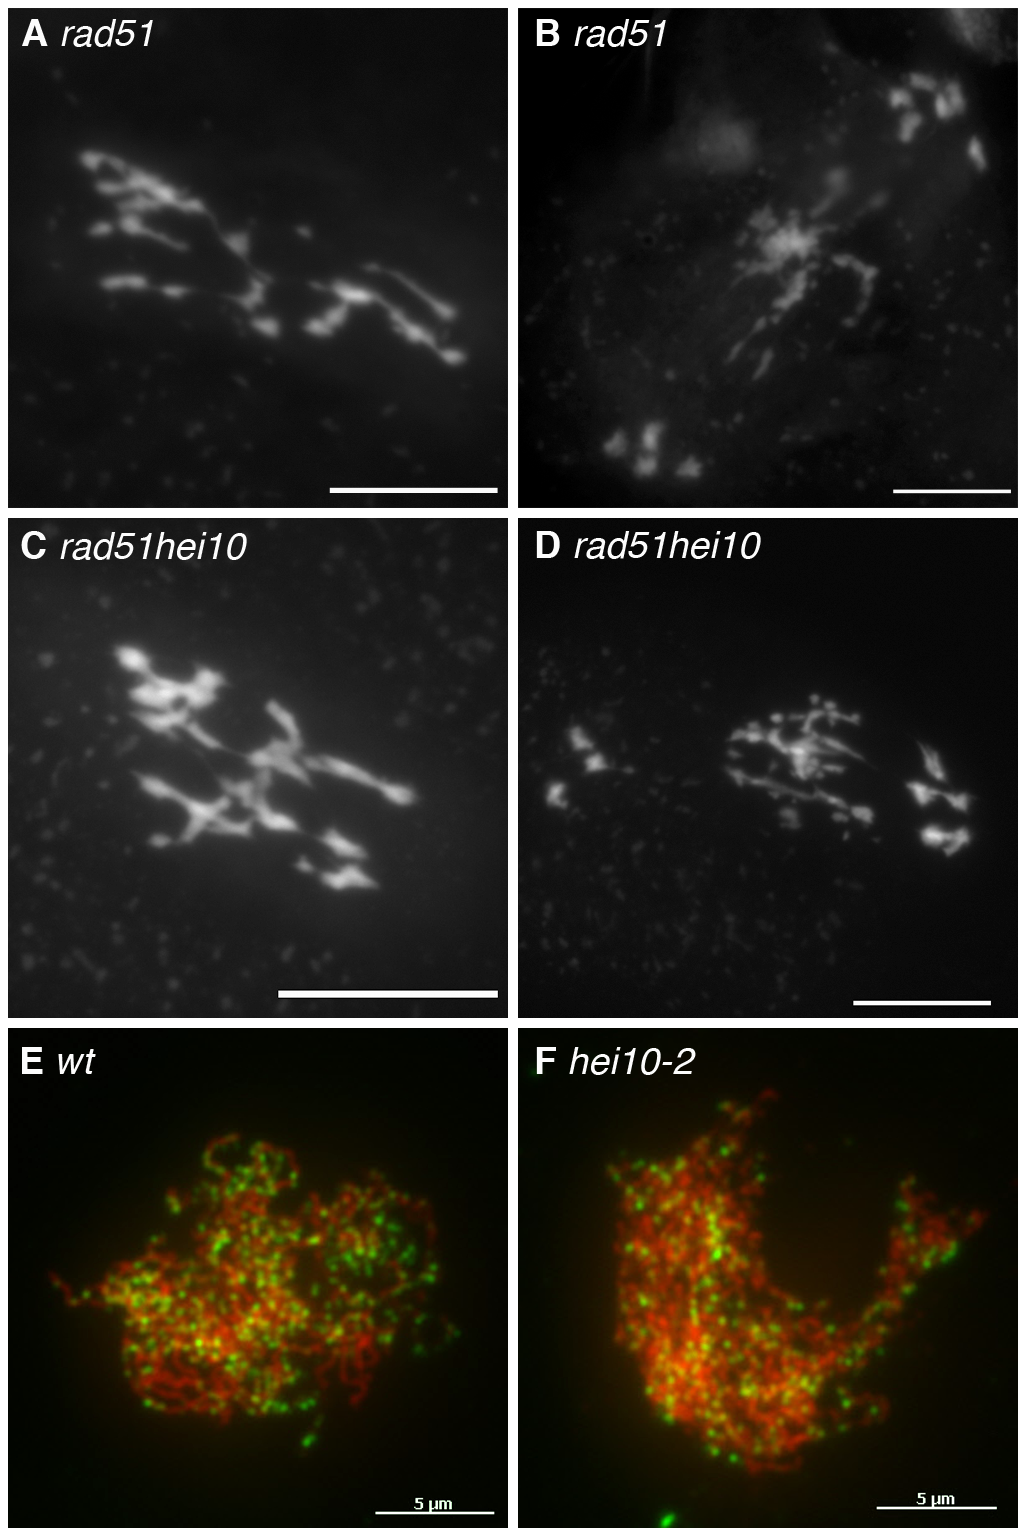 Early recombination defects are not detected in <i>hei10</i> mutants.